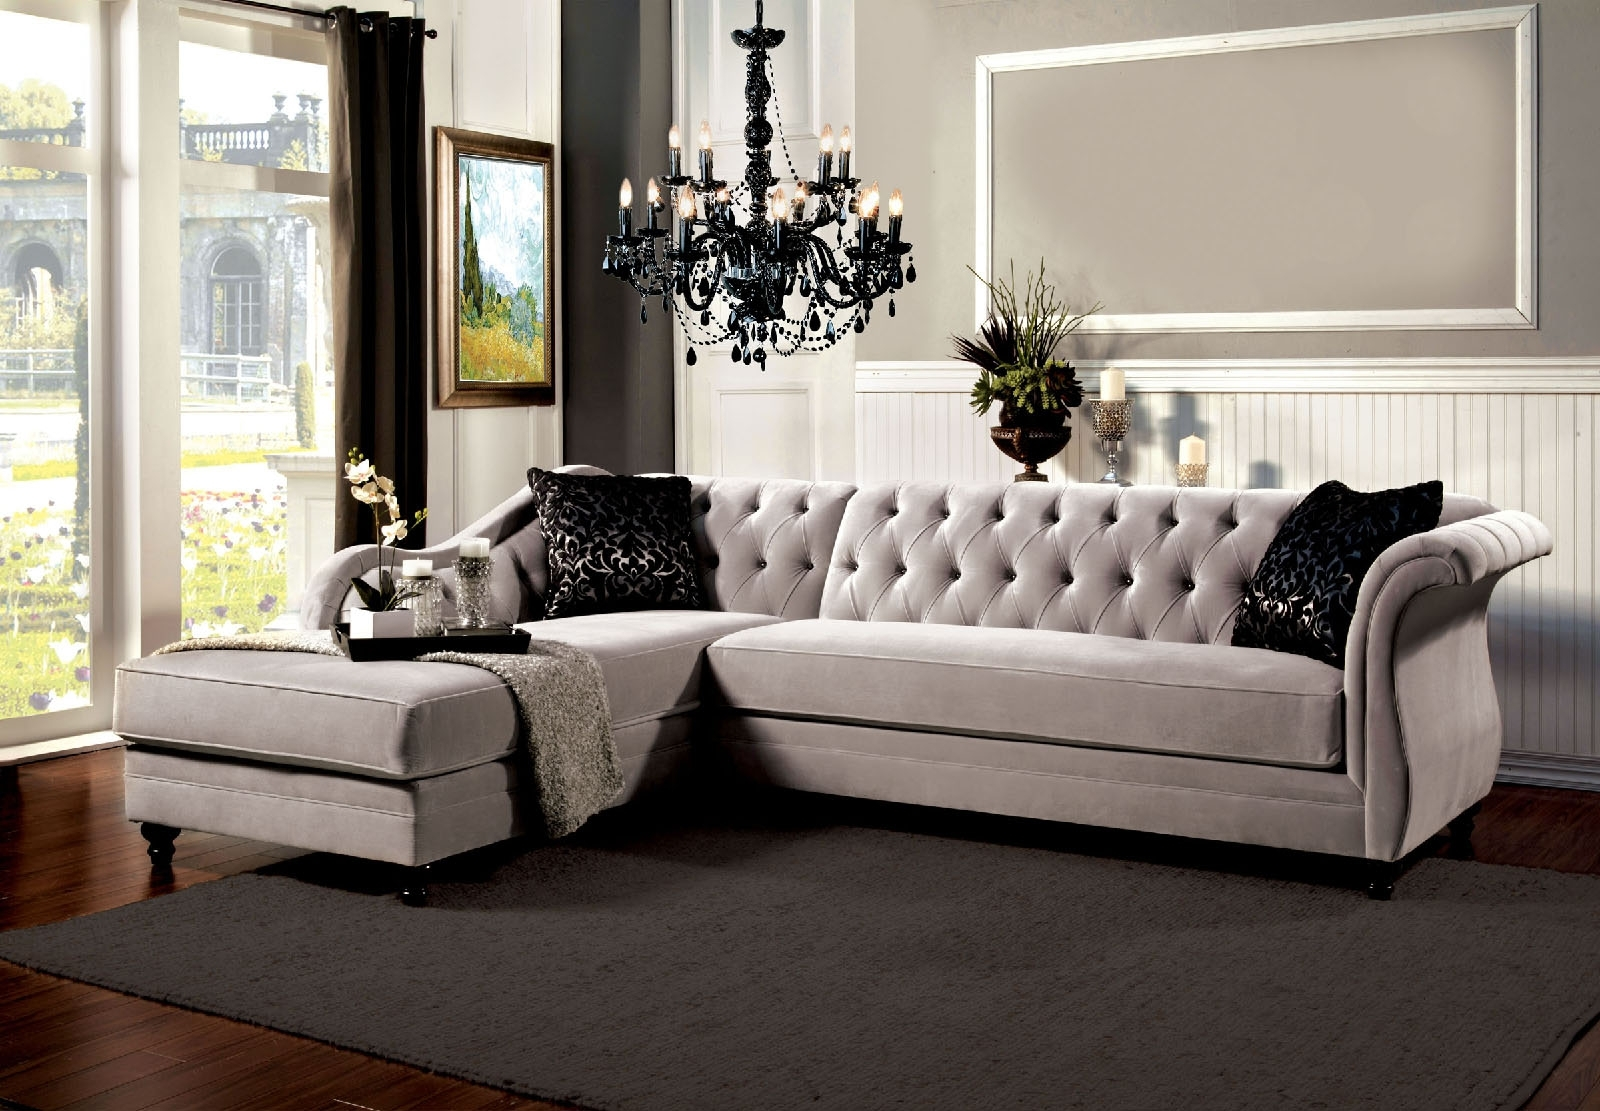 Tufted Sectional Sofas Intended For Trendy Grey Vintage Tufted Sectional Sofa (View 16 of 20)